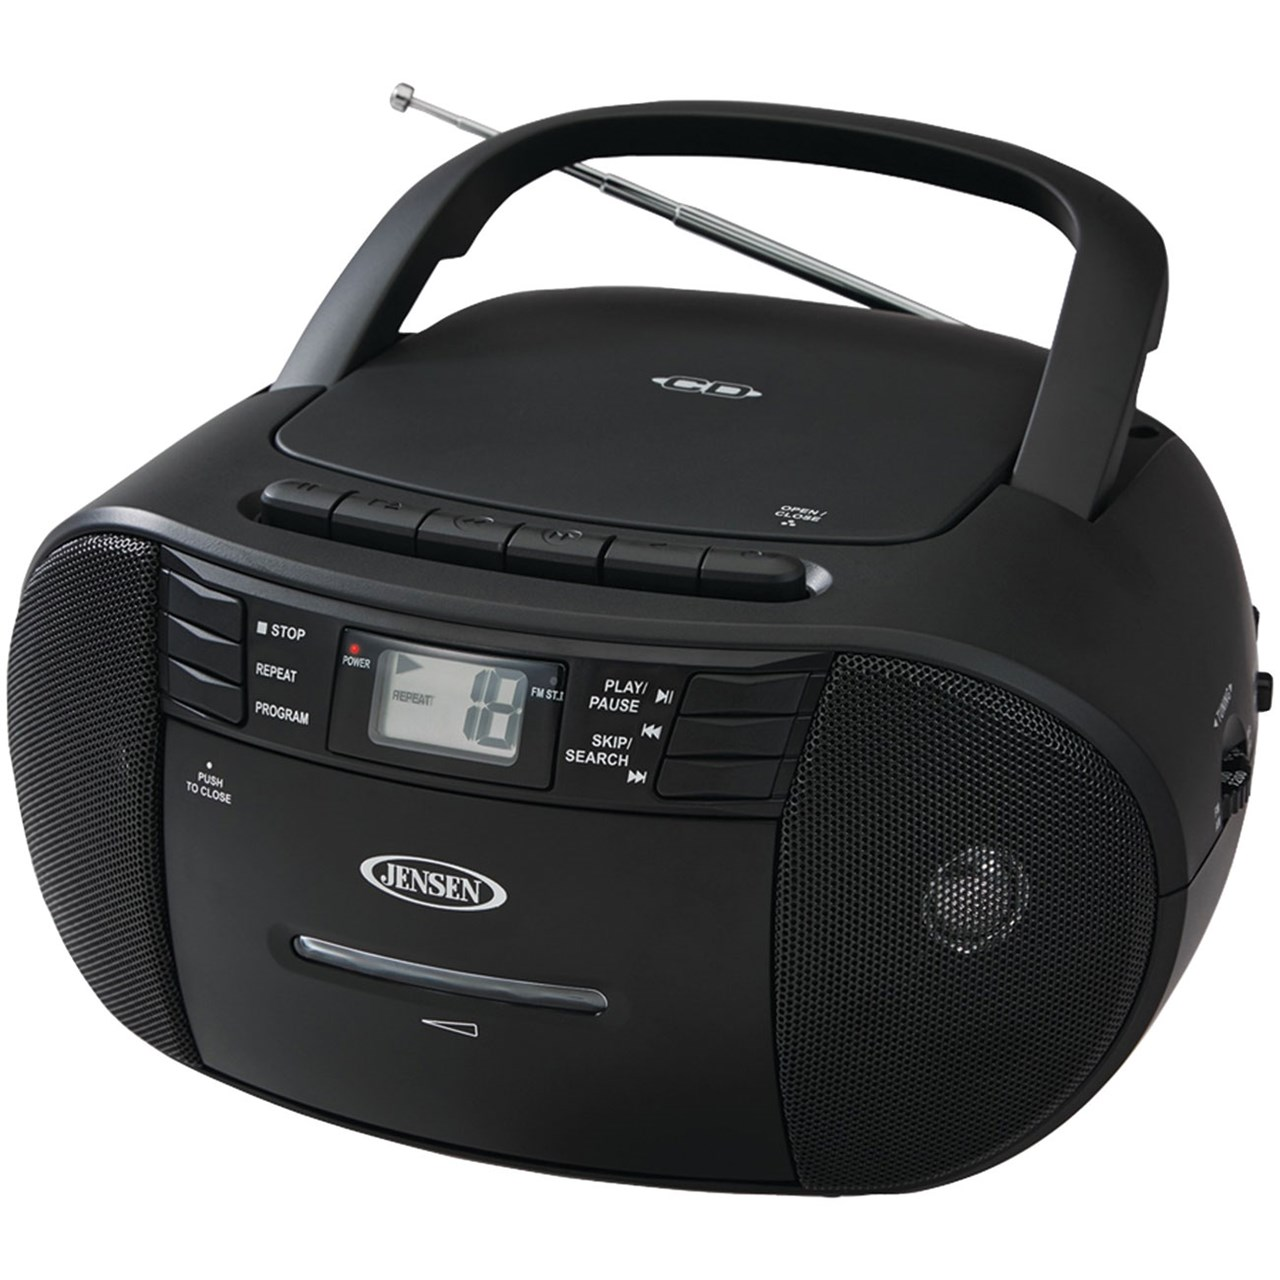 Jensen CD-545 Portable Stereo CD Player - Cassette - AM-FM Radio